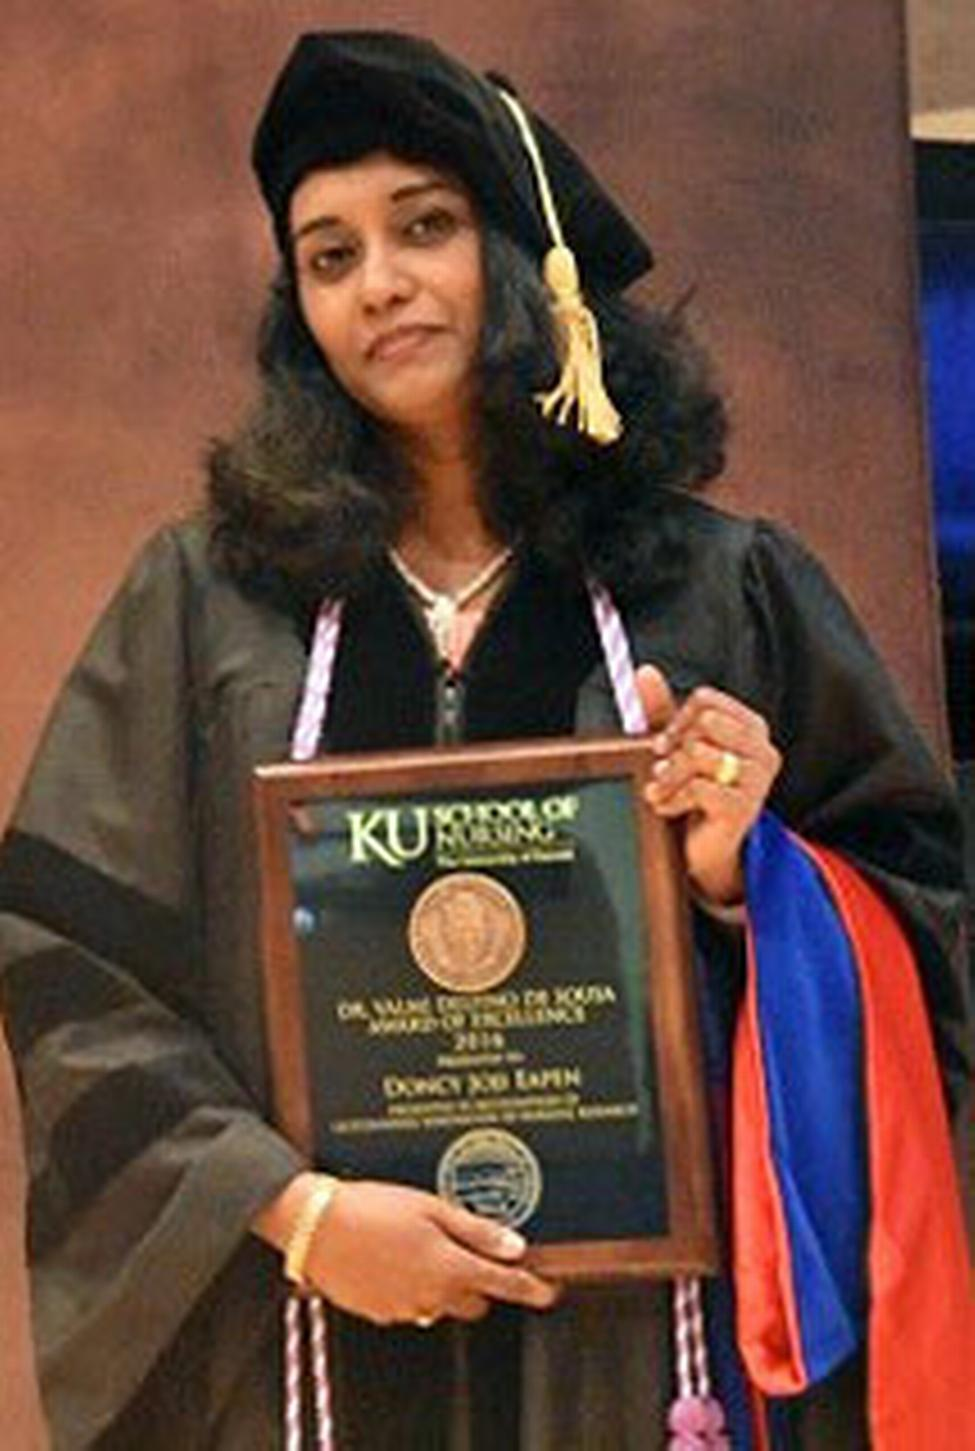 Dr. Eapen presented with the Dr. Valmi Delfino De Sousa Award of Excellence at KU School of Nursing's commencement in May 2016.